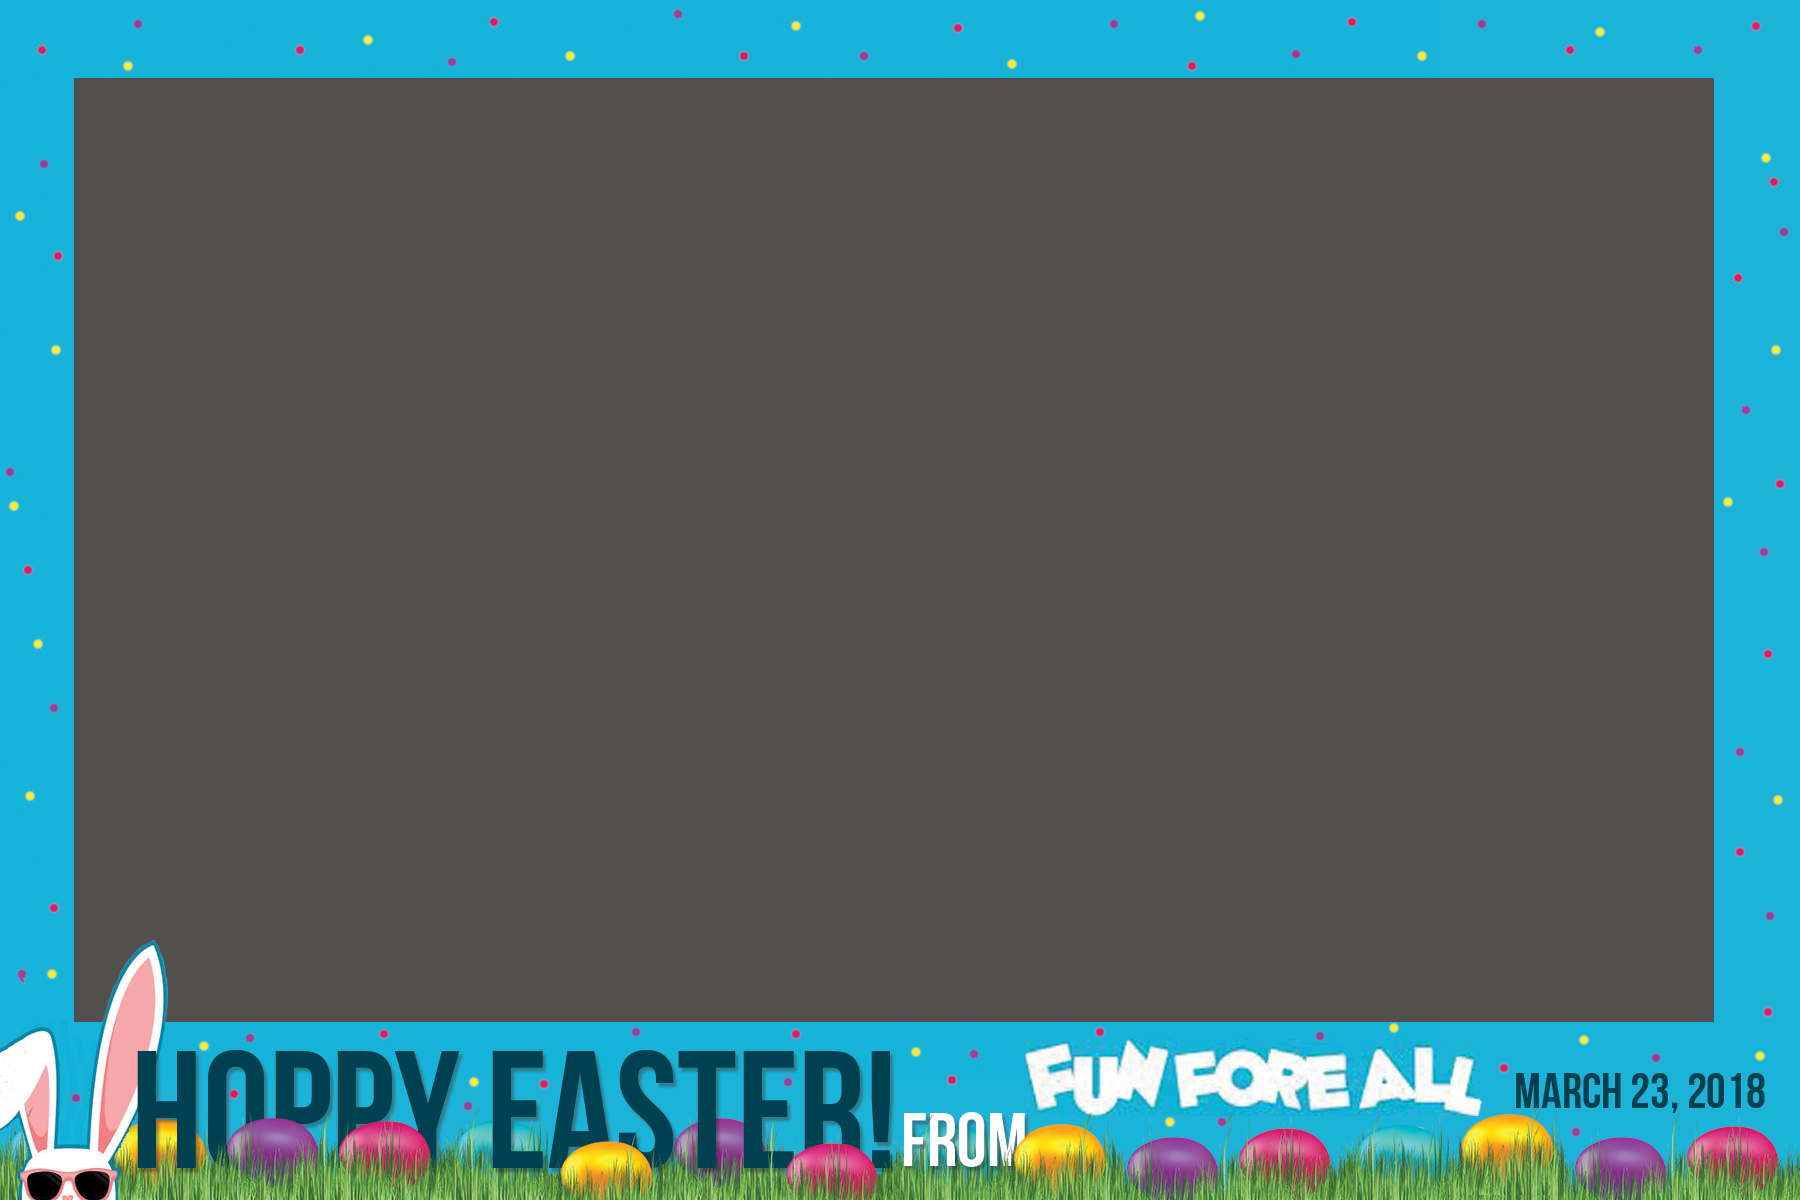 EASTER EGG HUNT PHOTO BOOTH PICTURE FRAME (2018)